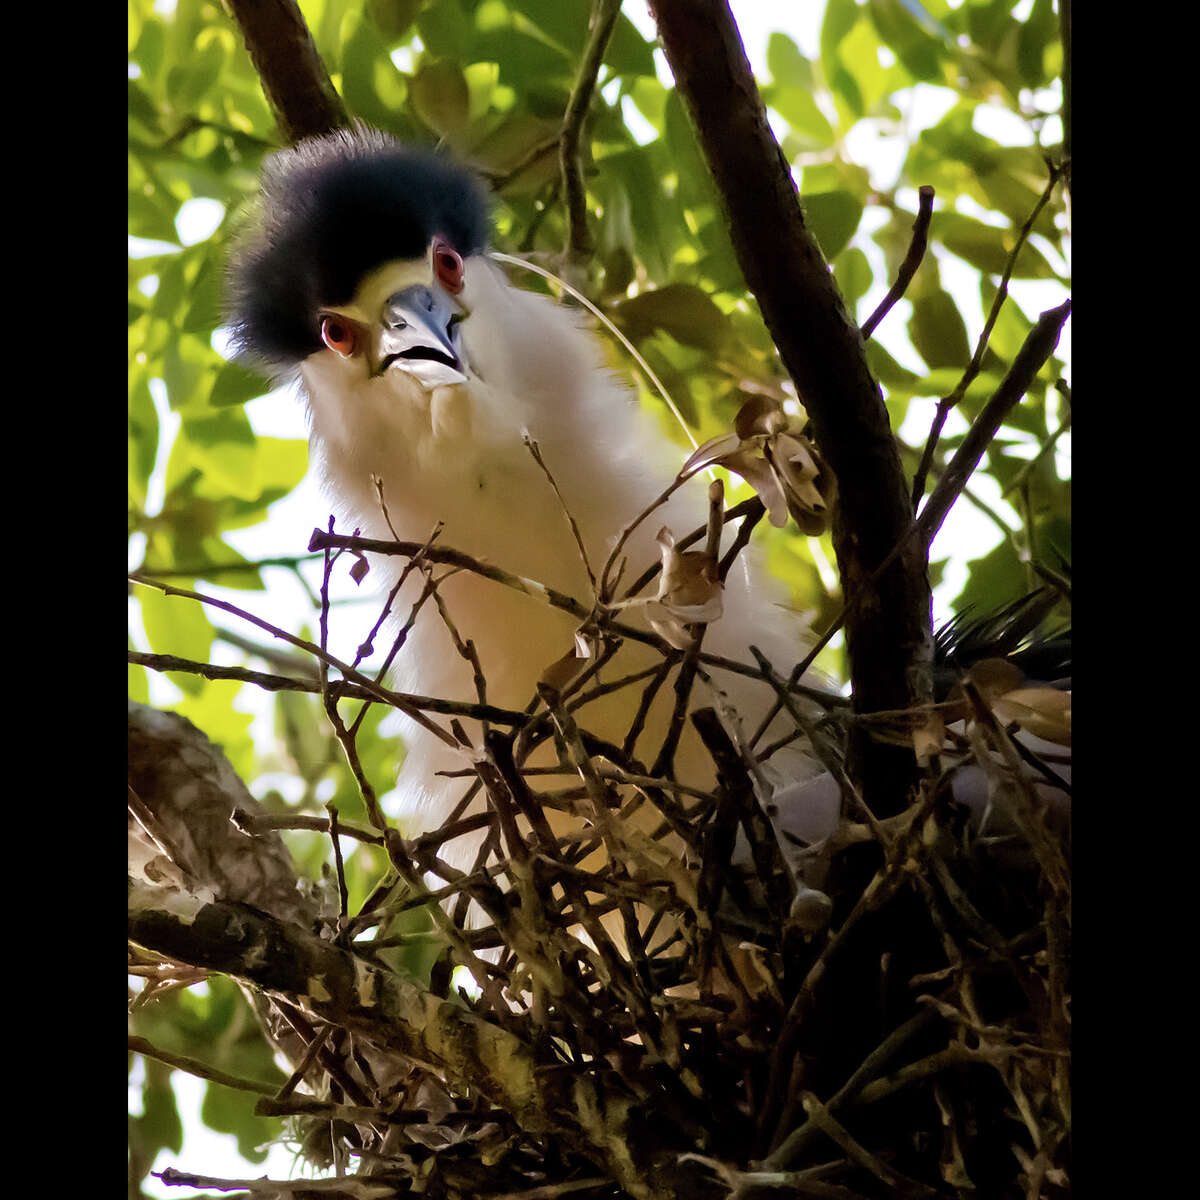 A Black-crowned Night-Heron peers from its nest in an oak tree in the Boulevard Oaks subdivision north of Rice University. See a slide-show of photos by Robert Flatt at chron.com and with our iPad app.